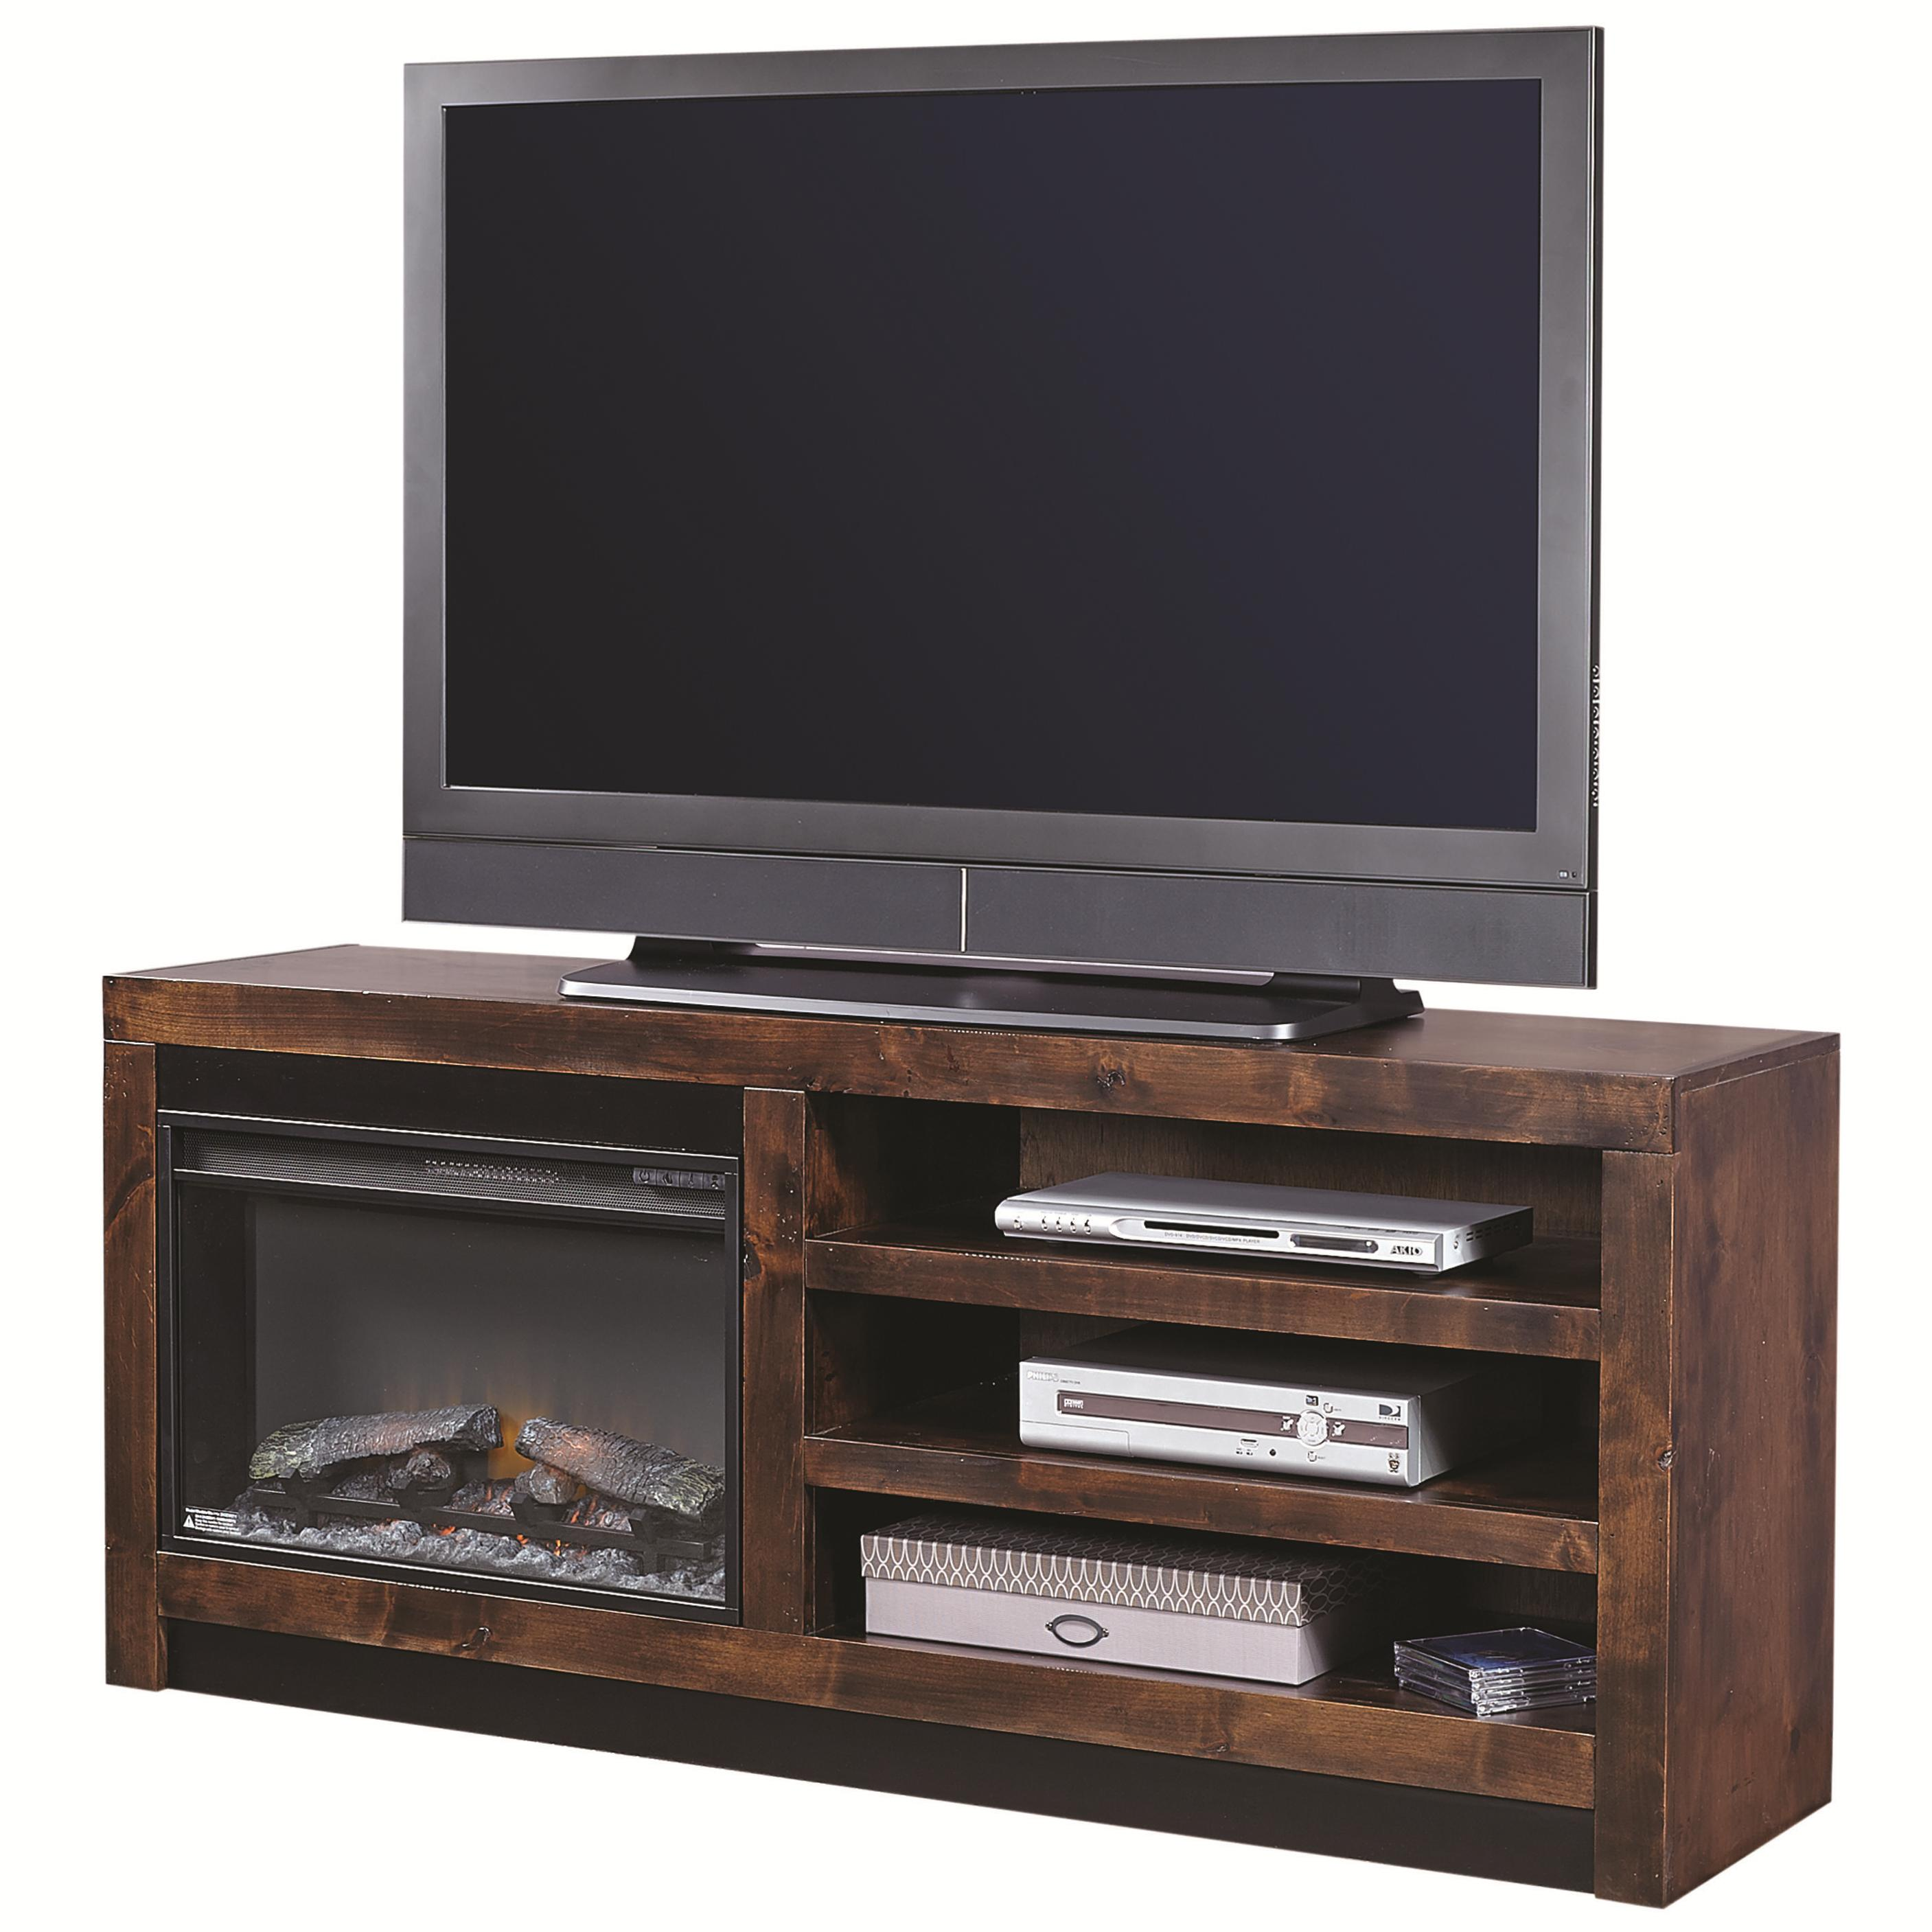 Aspenhome Contemporary Alder 65 Inch Fireplace Console - Item Number: DL1903-TOB